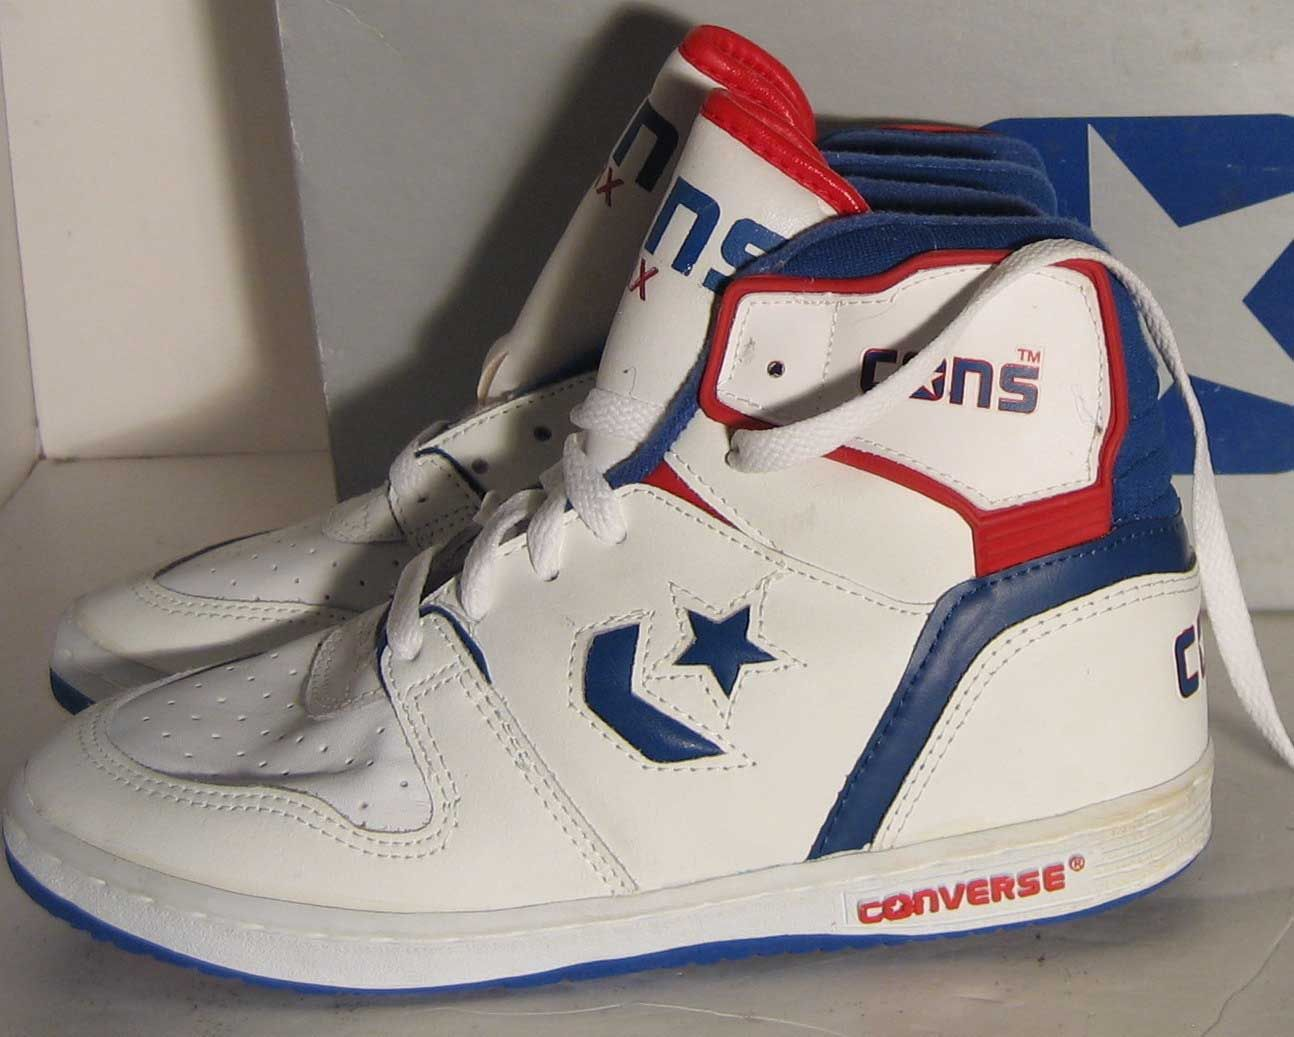 Converse basketball shoes, Sneakers